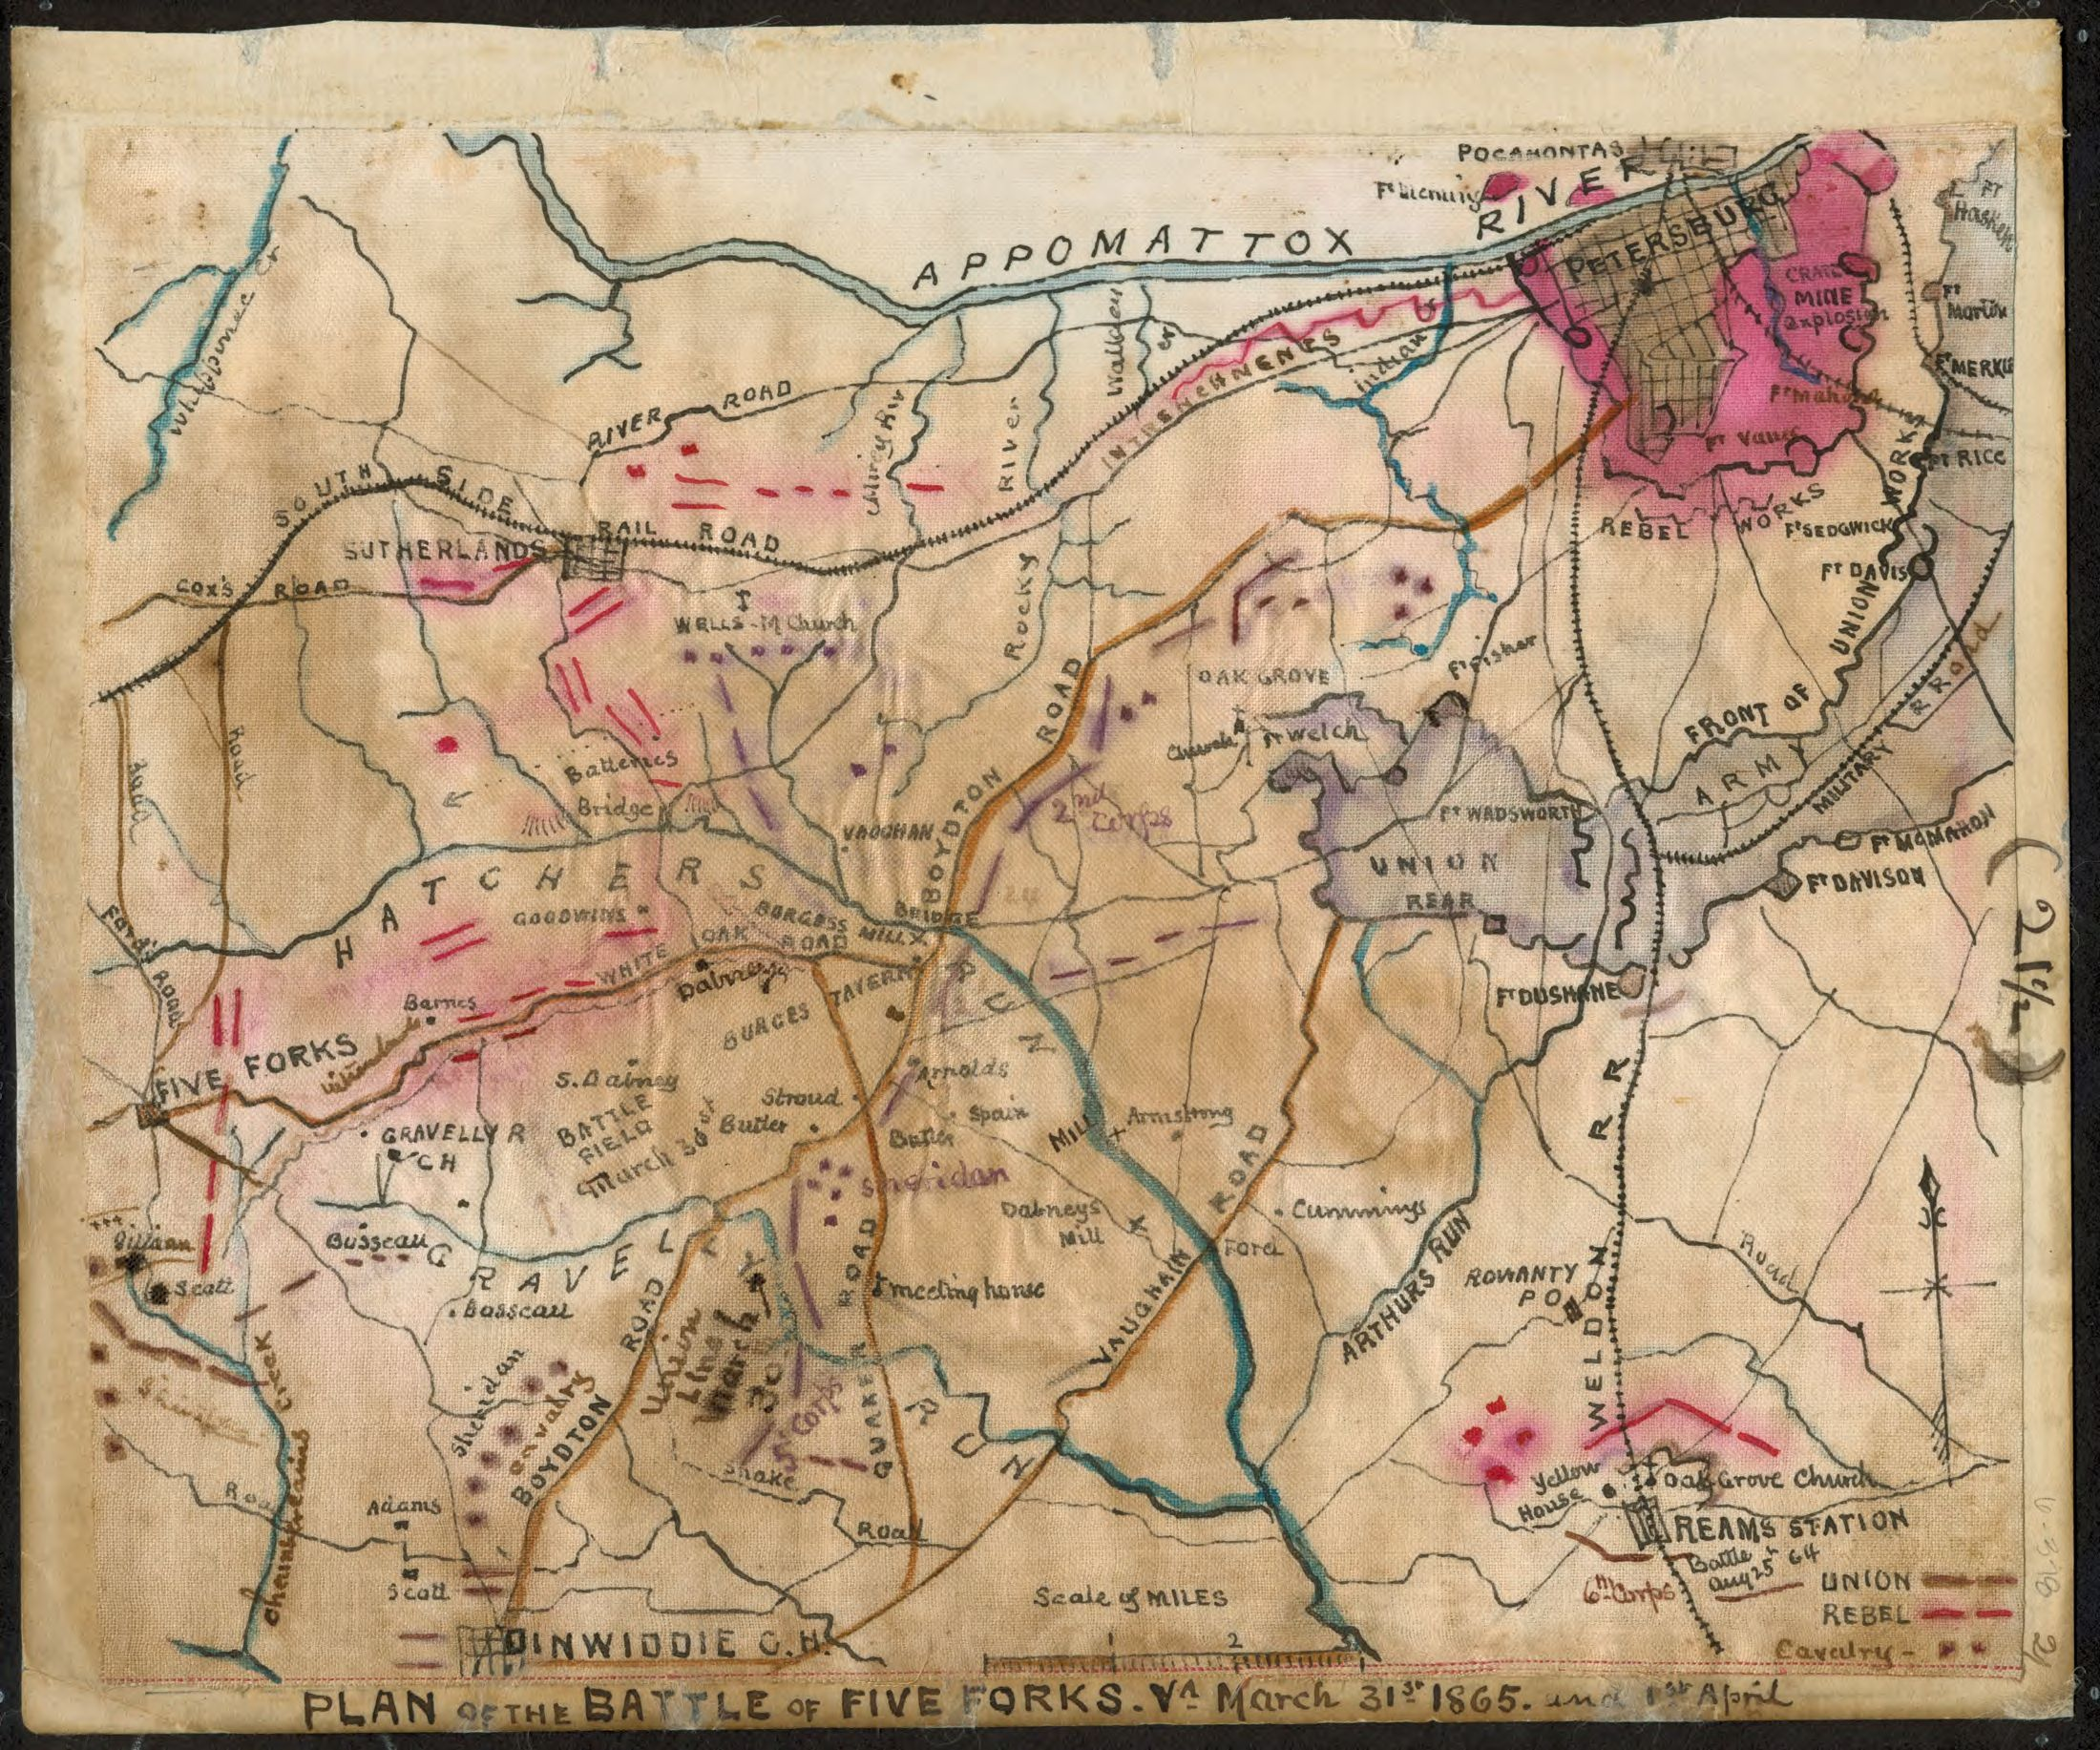 Plan Of The Battle Of Five Forks Va March 31st And 1st April Map Shows View From